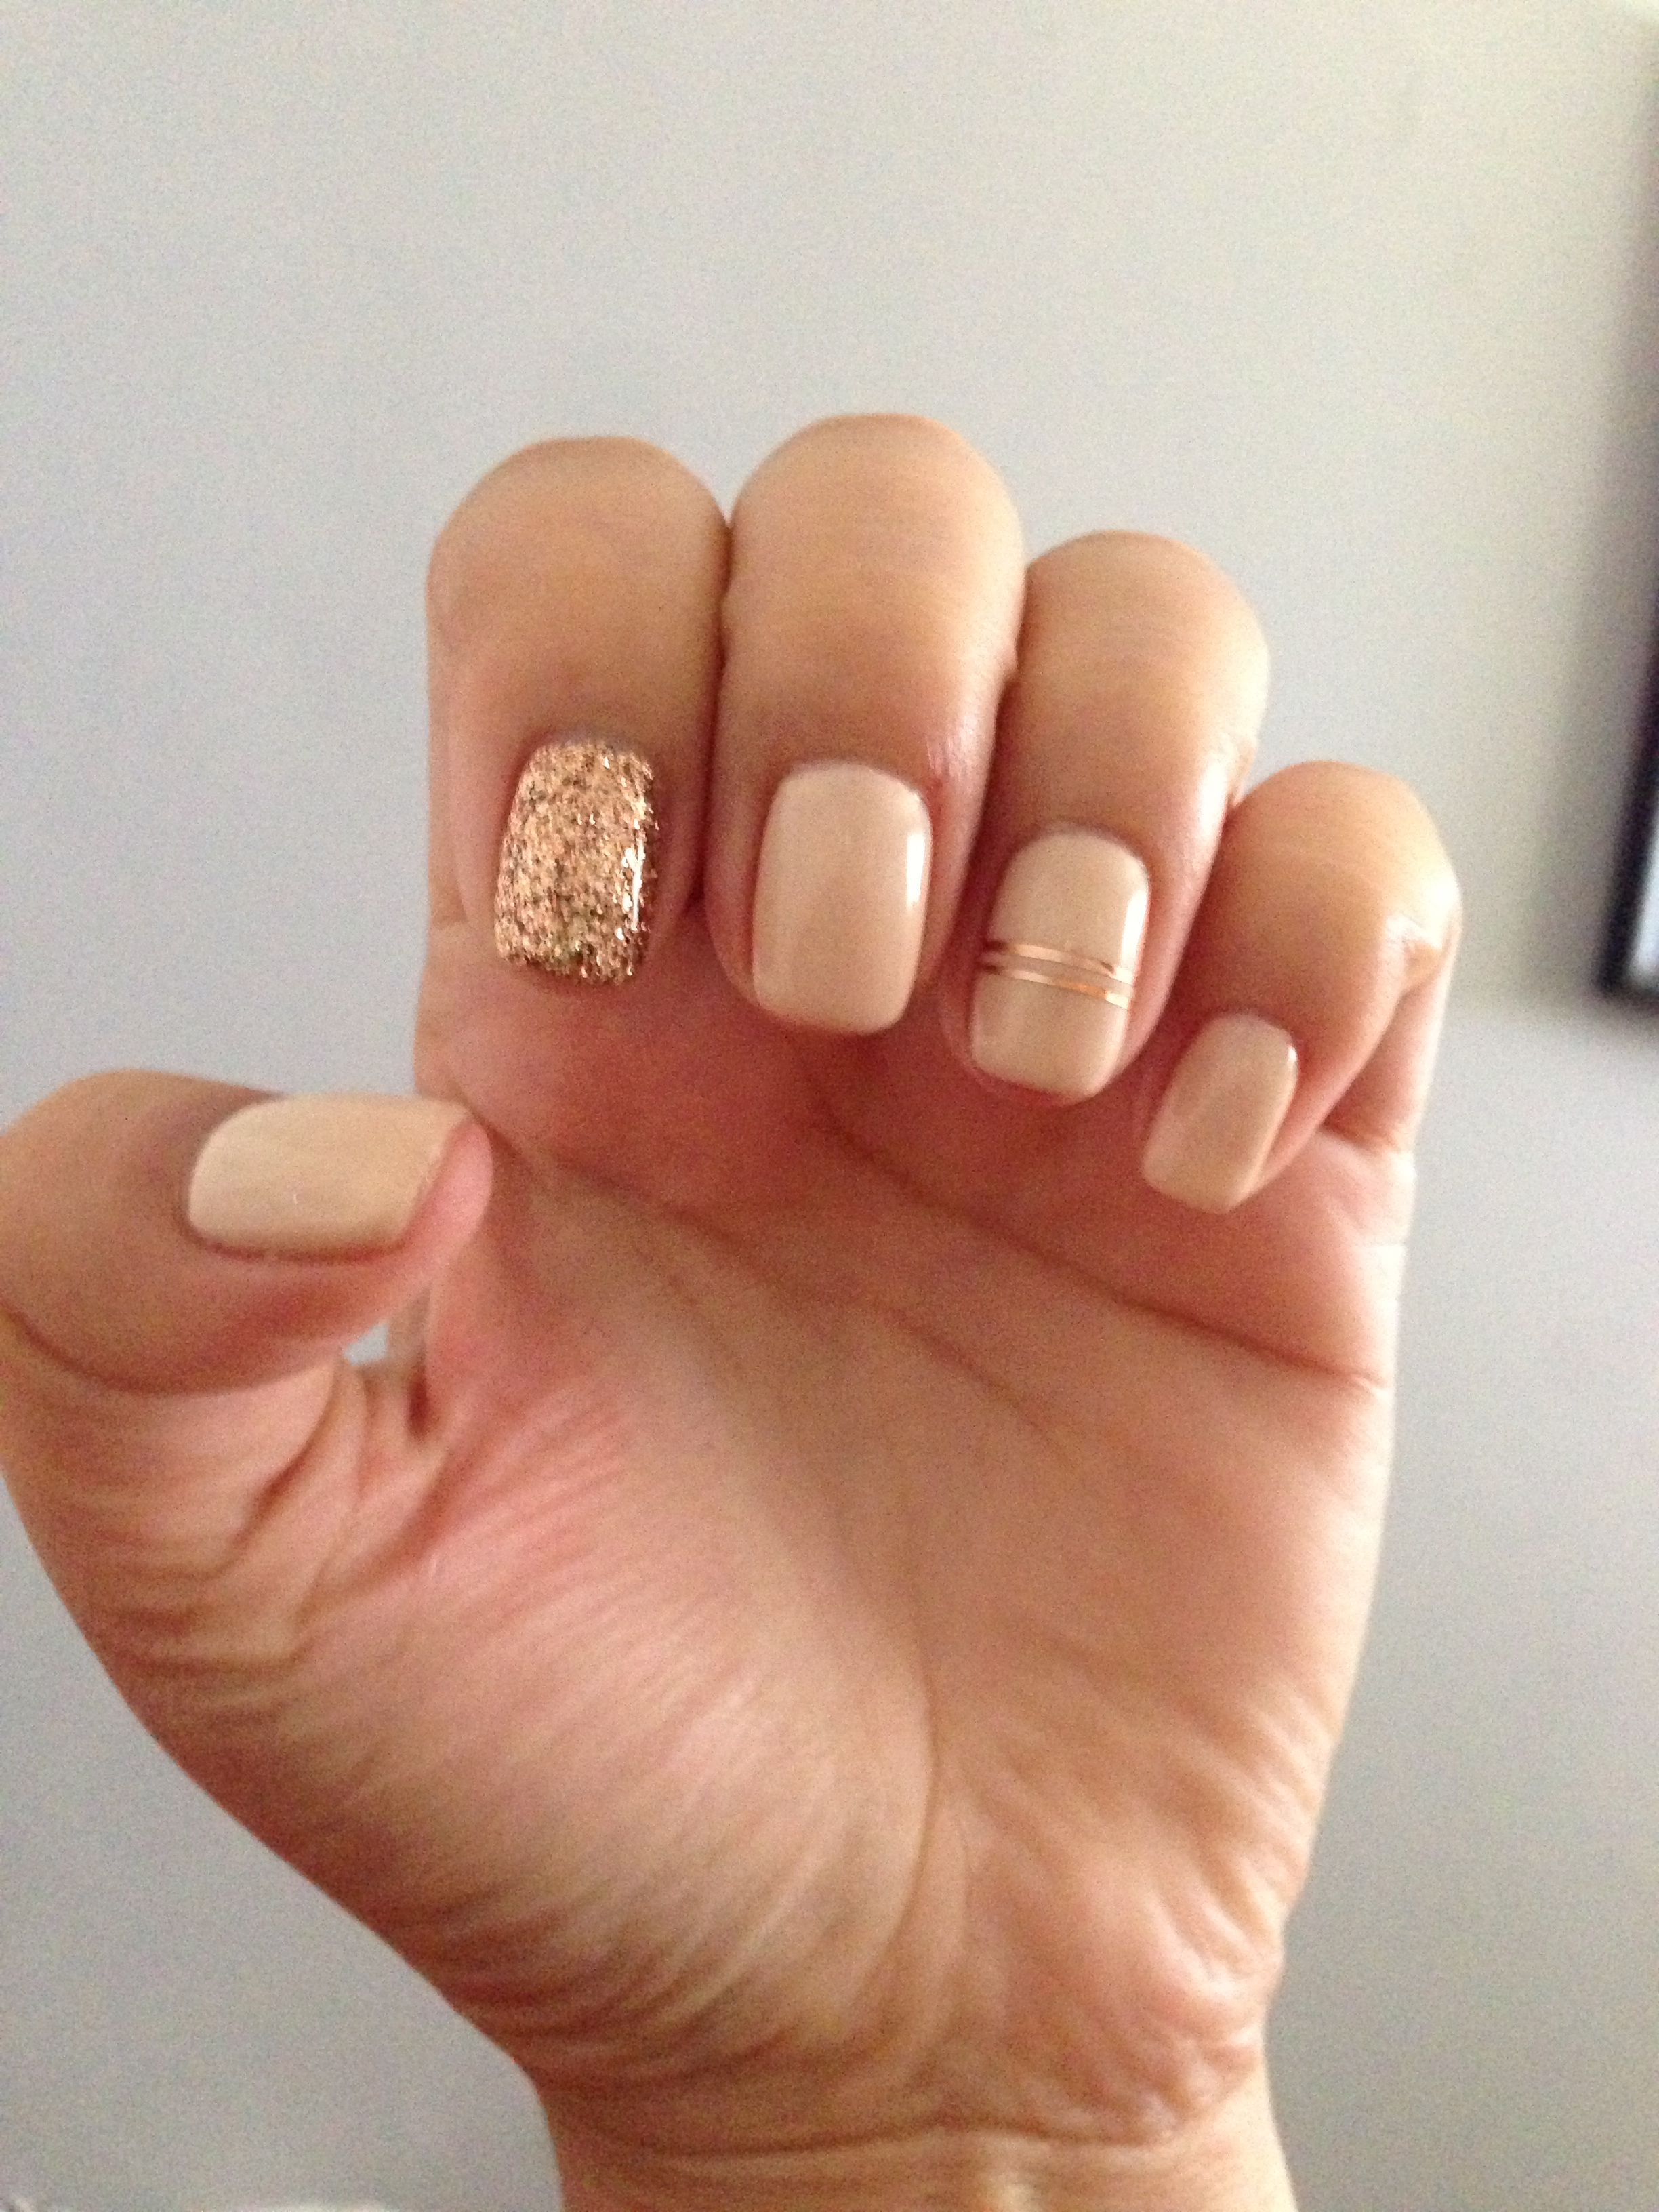 Gel manicure finger icing | Pinterest | Glitter accent nails, Gel ...